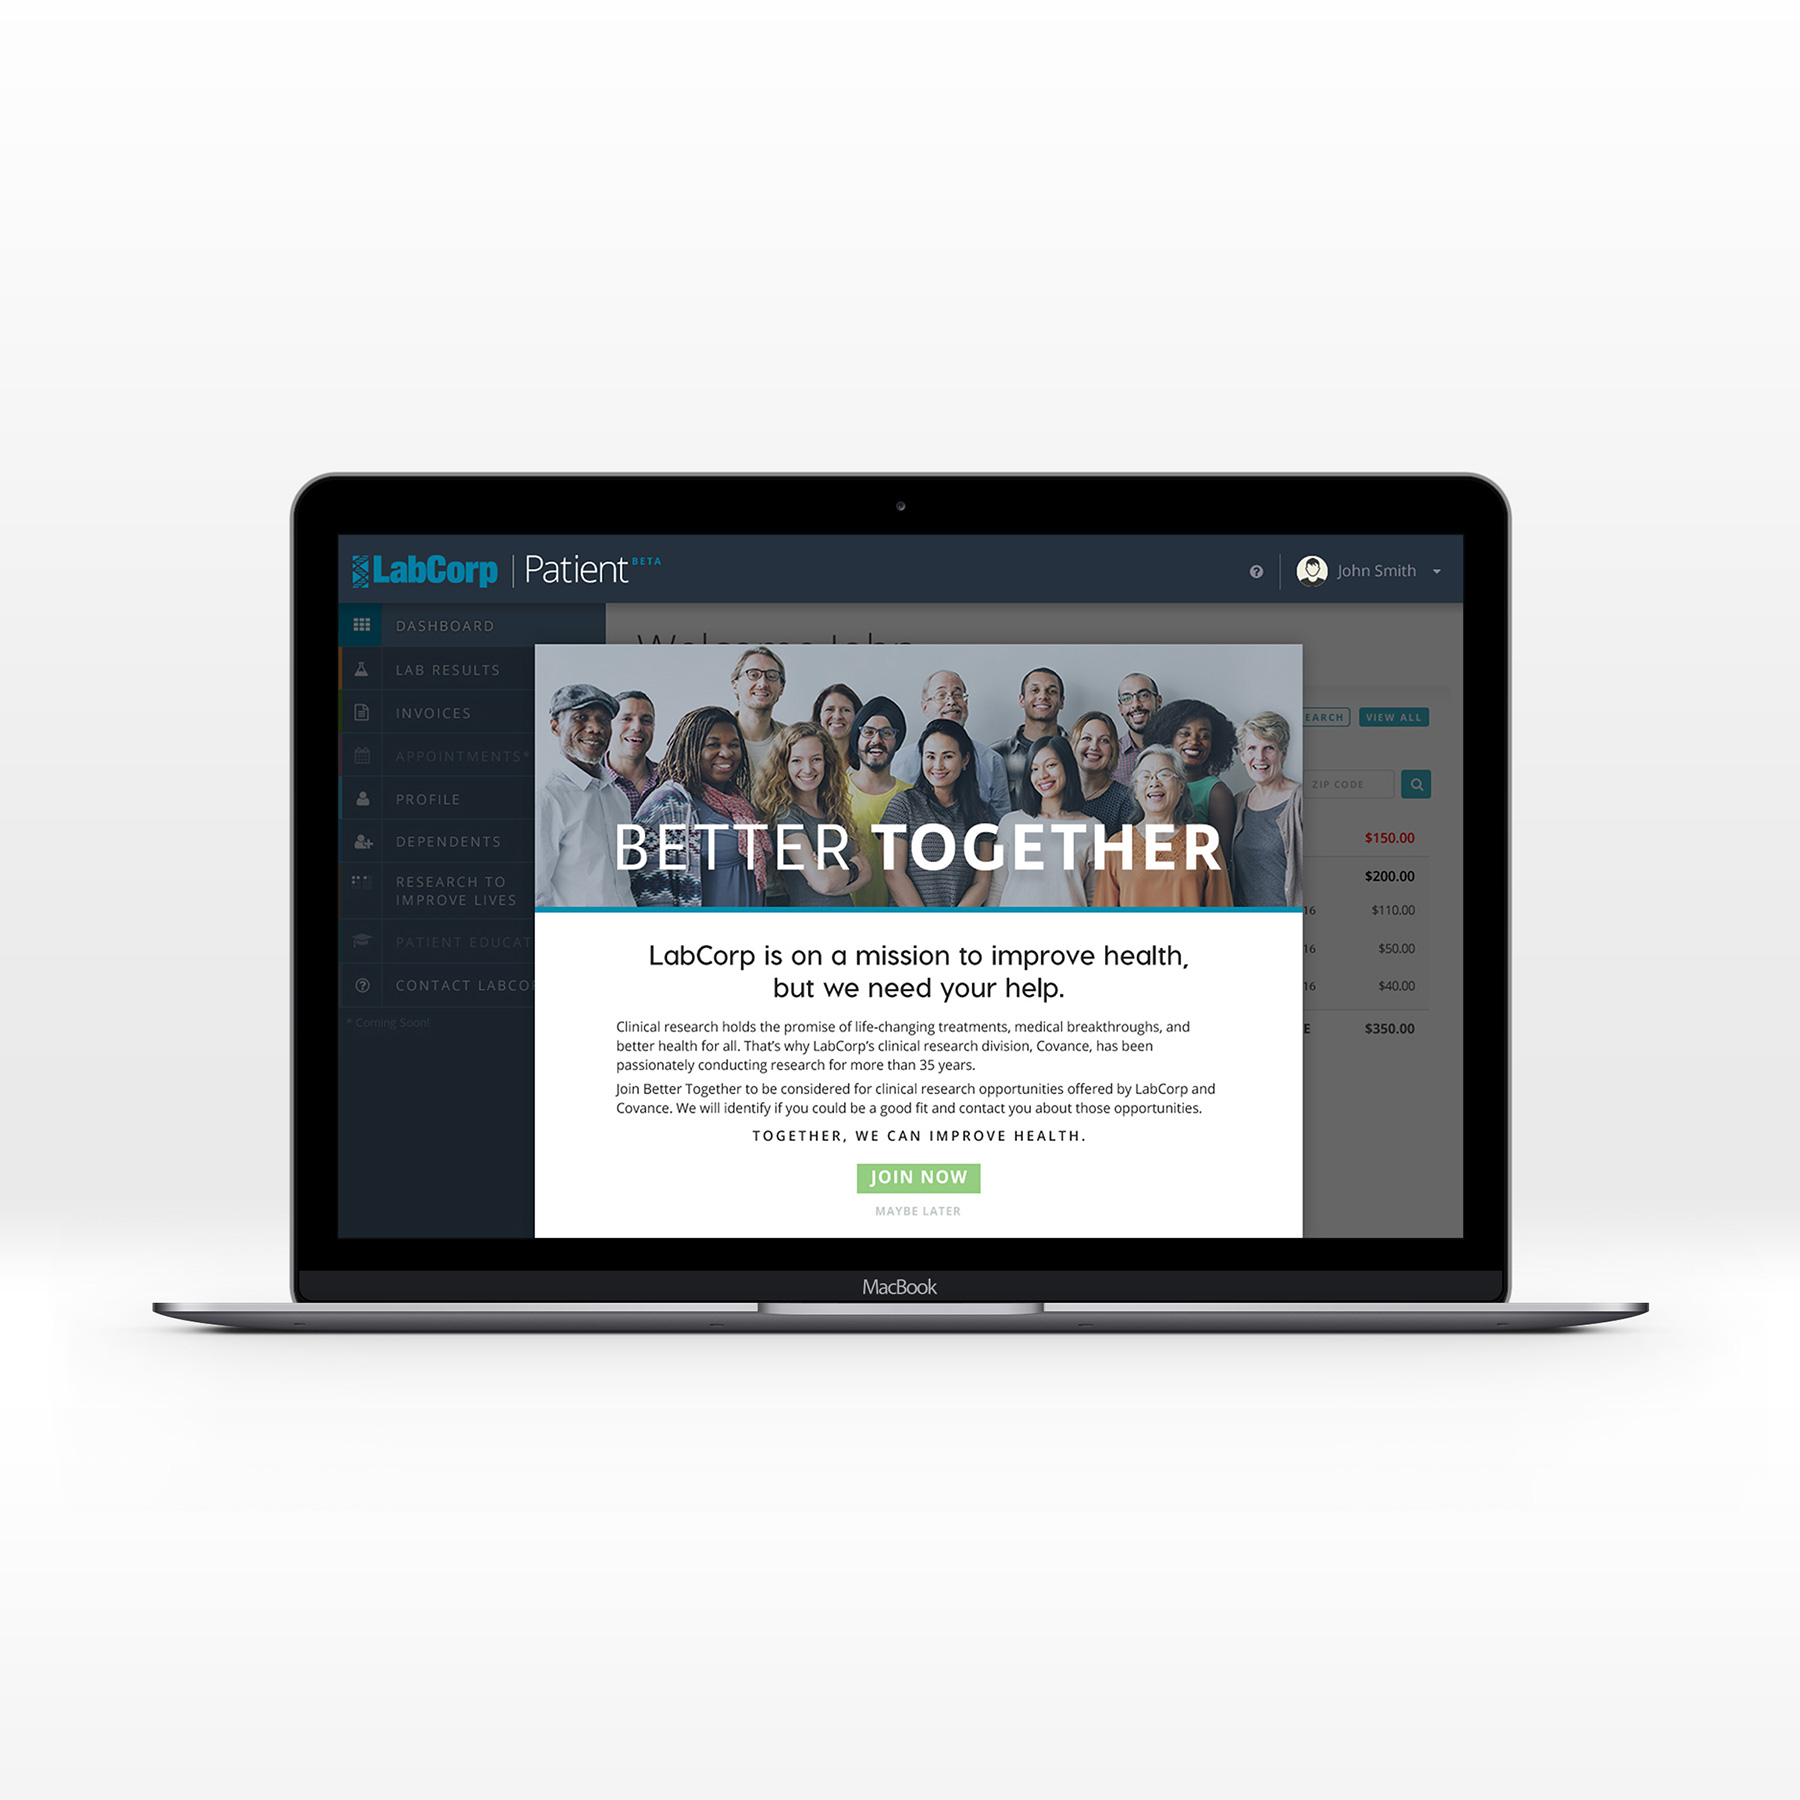 Brand identity design for healthcare, wellness and medical research program, Better Together, by Alexa B. Creative & Design.